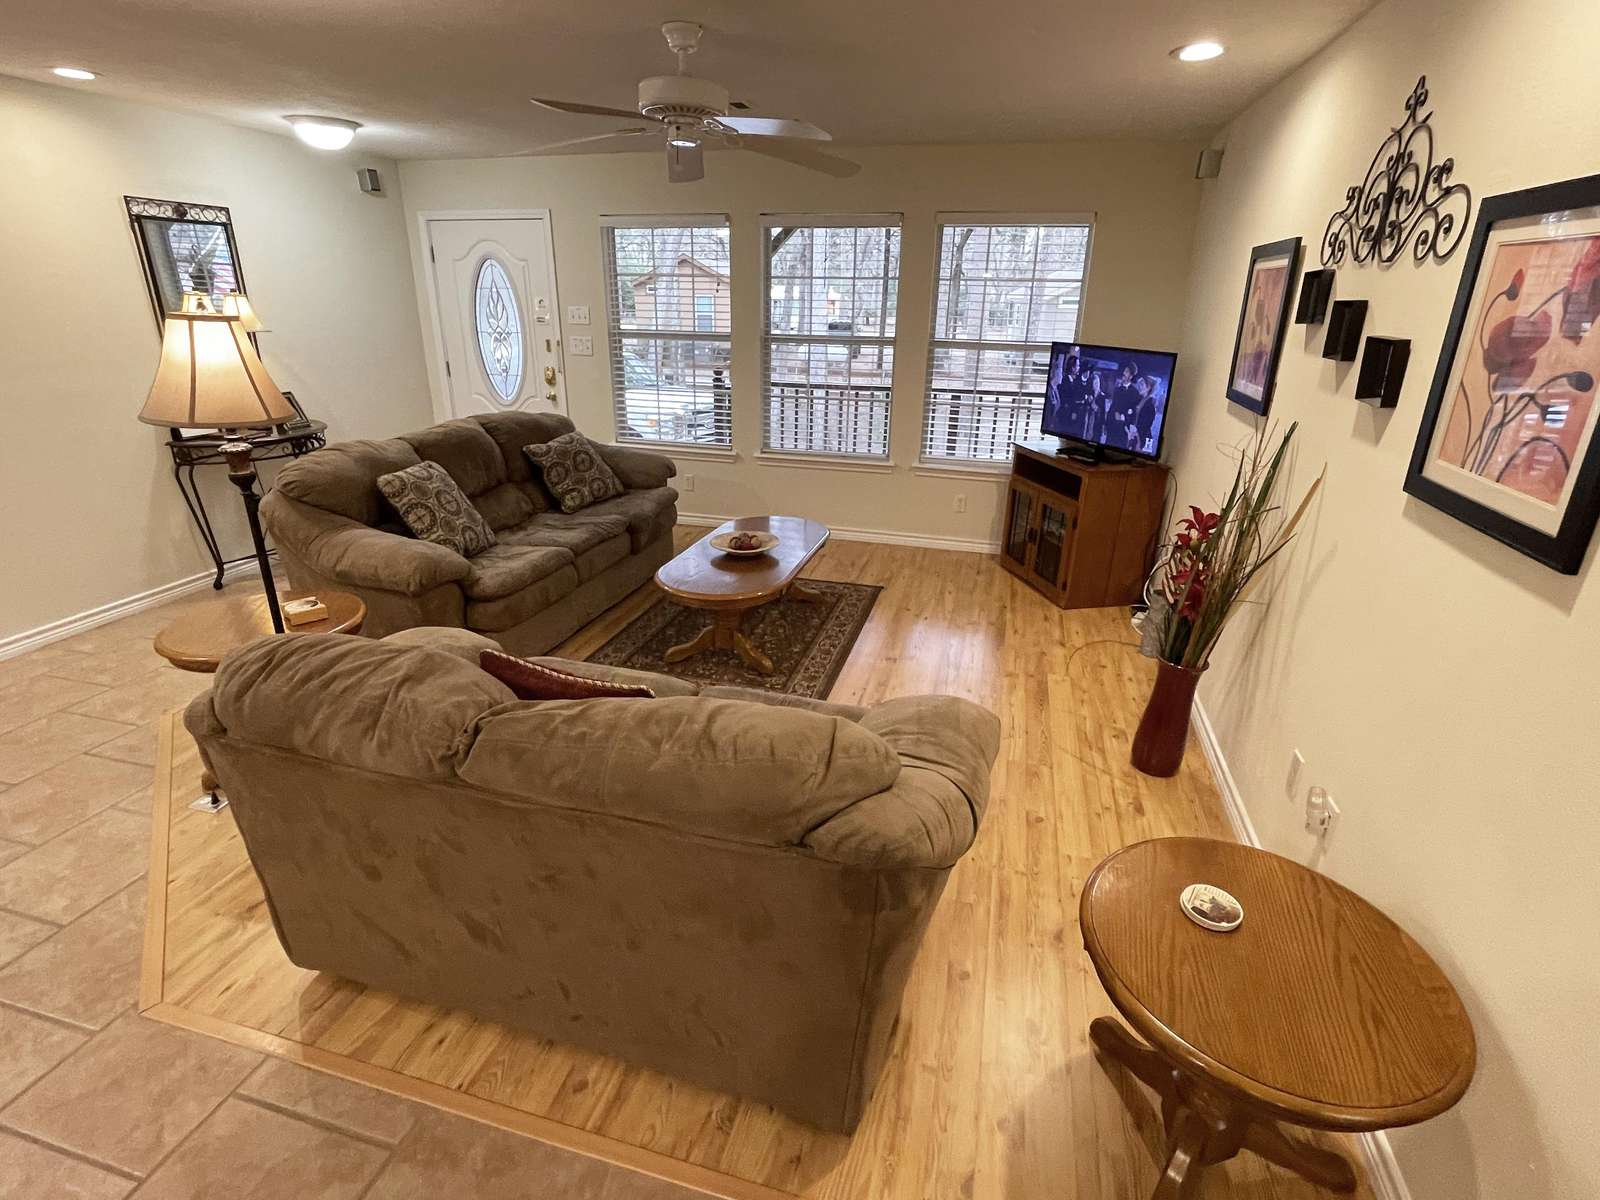 Our Guests enjoy the open floor plan and amenities of the home.